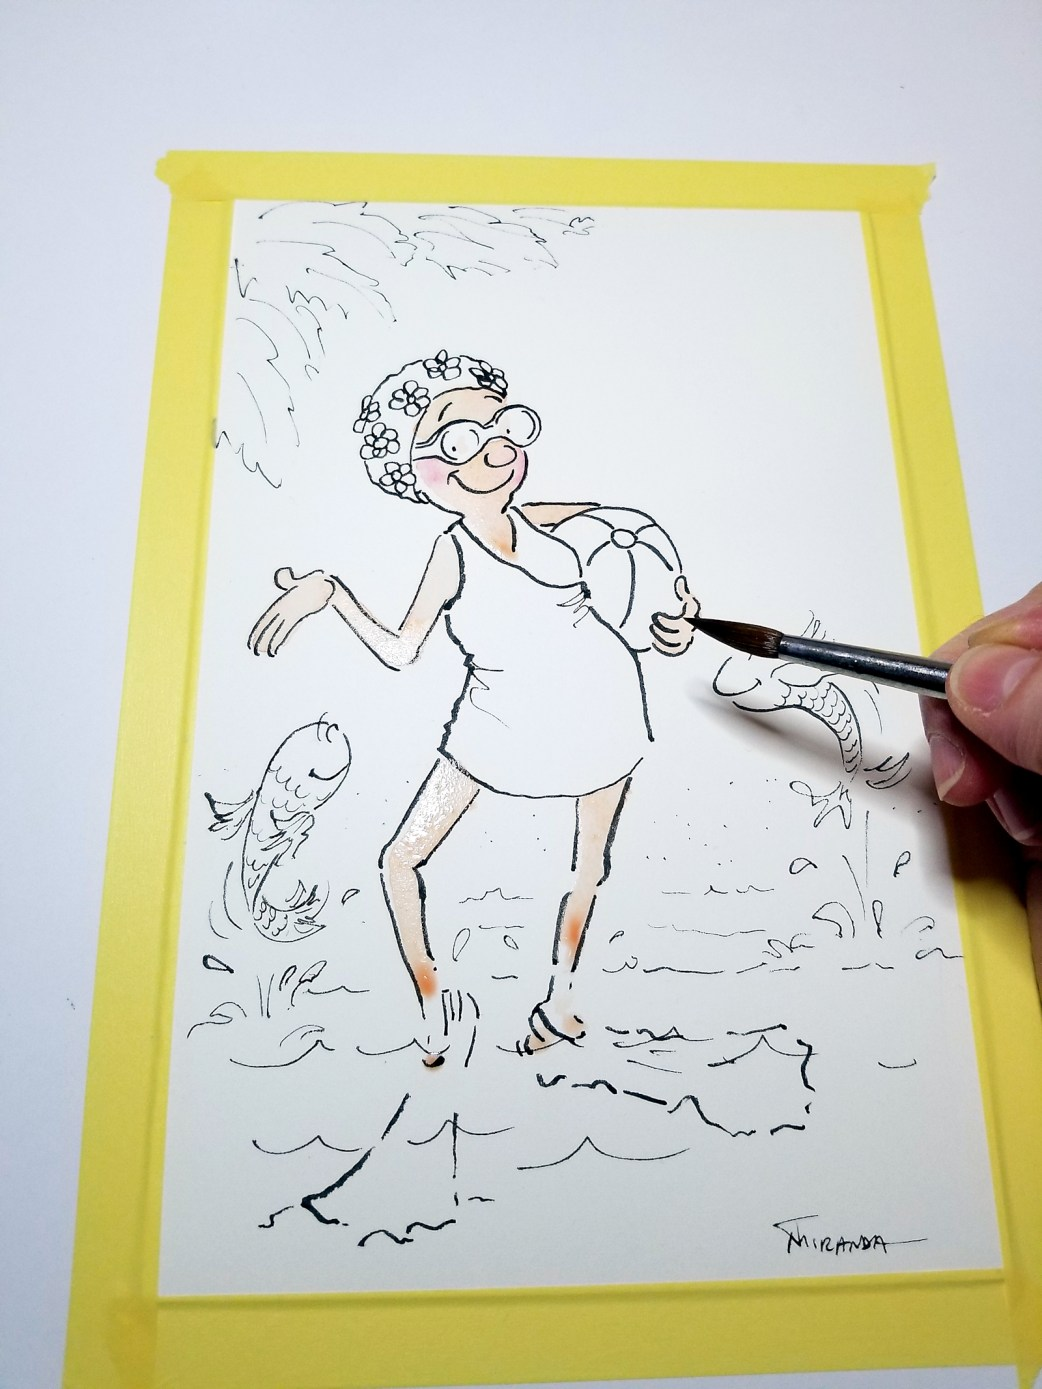 Photograph of Still Fabulous greeting card illustration in progress by Joana Miranda